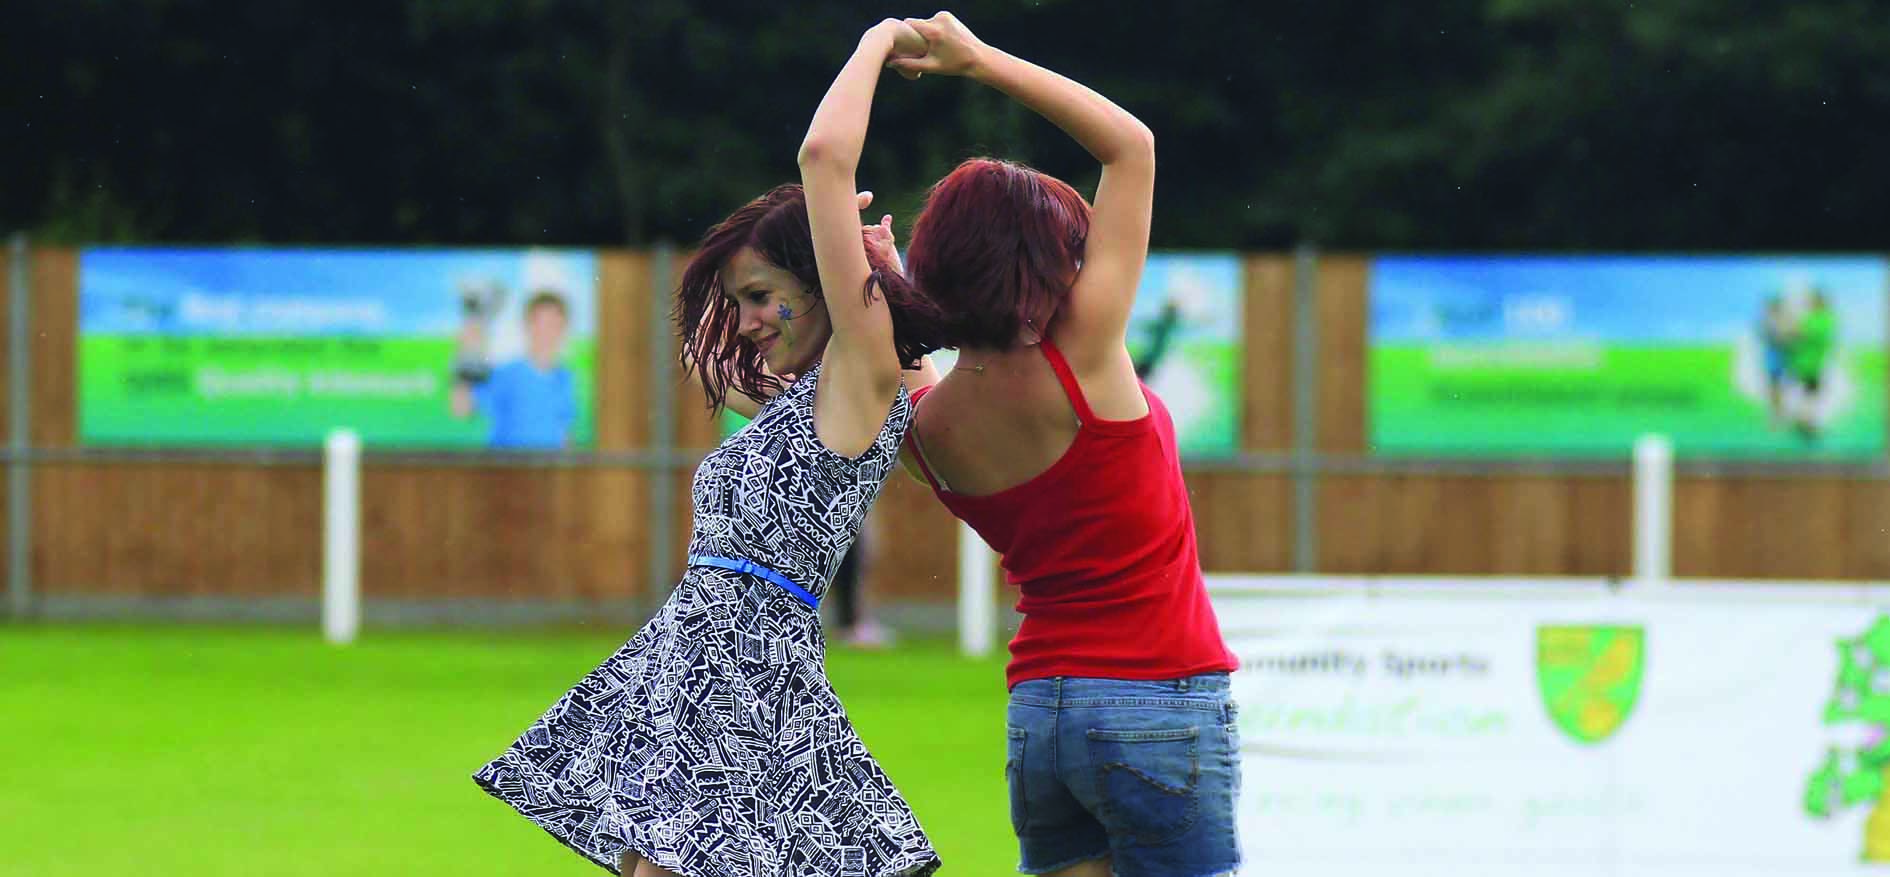 Dancing at Wroxfest